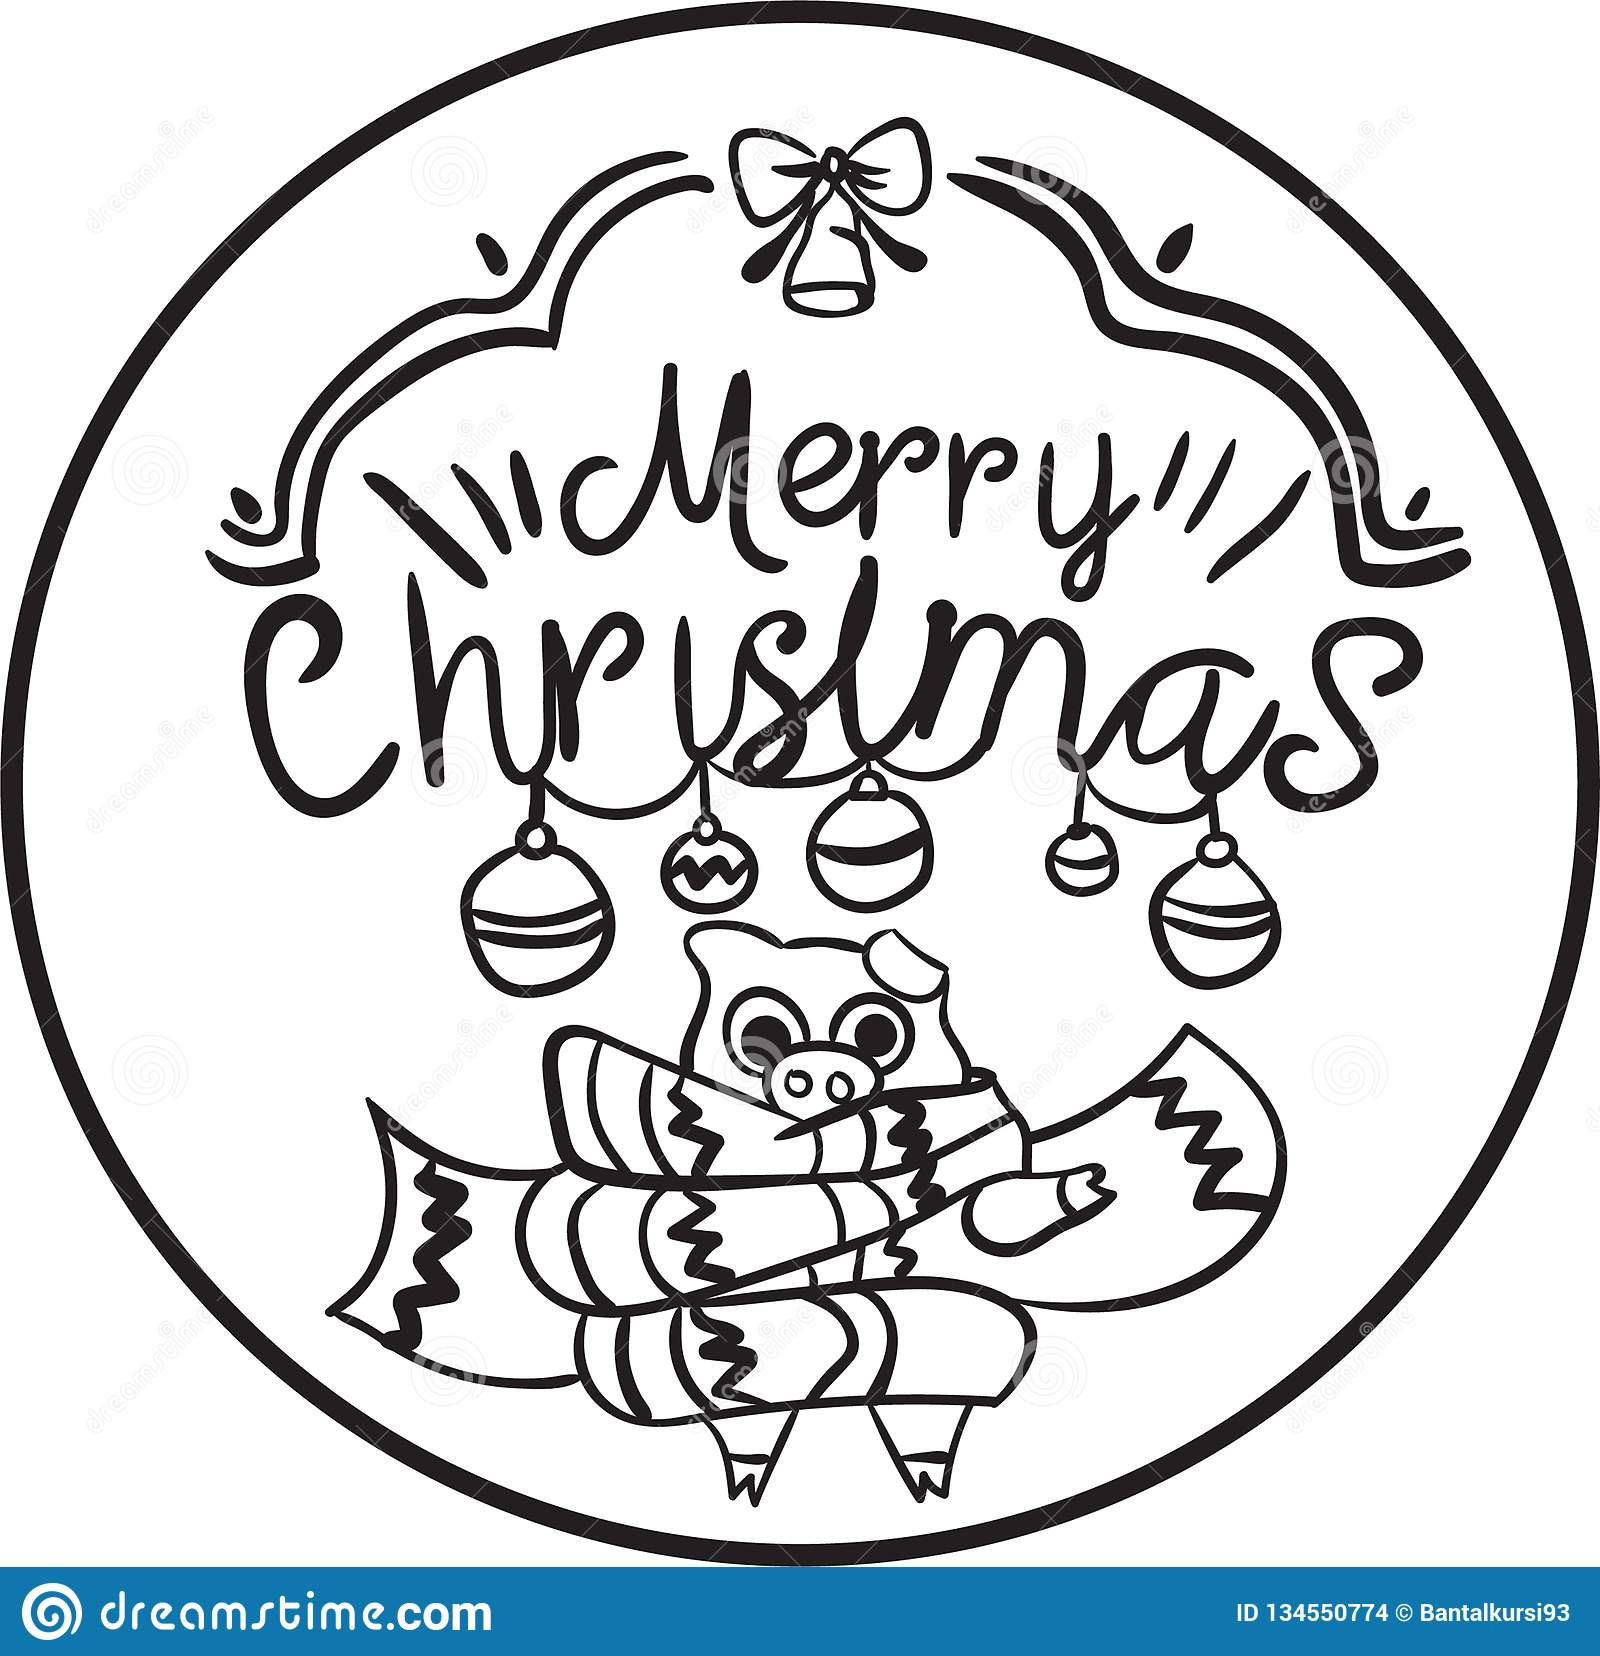 It's just a picture of Printable New Years Coloring Pages regarding winter time